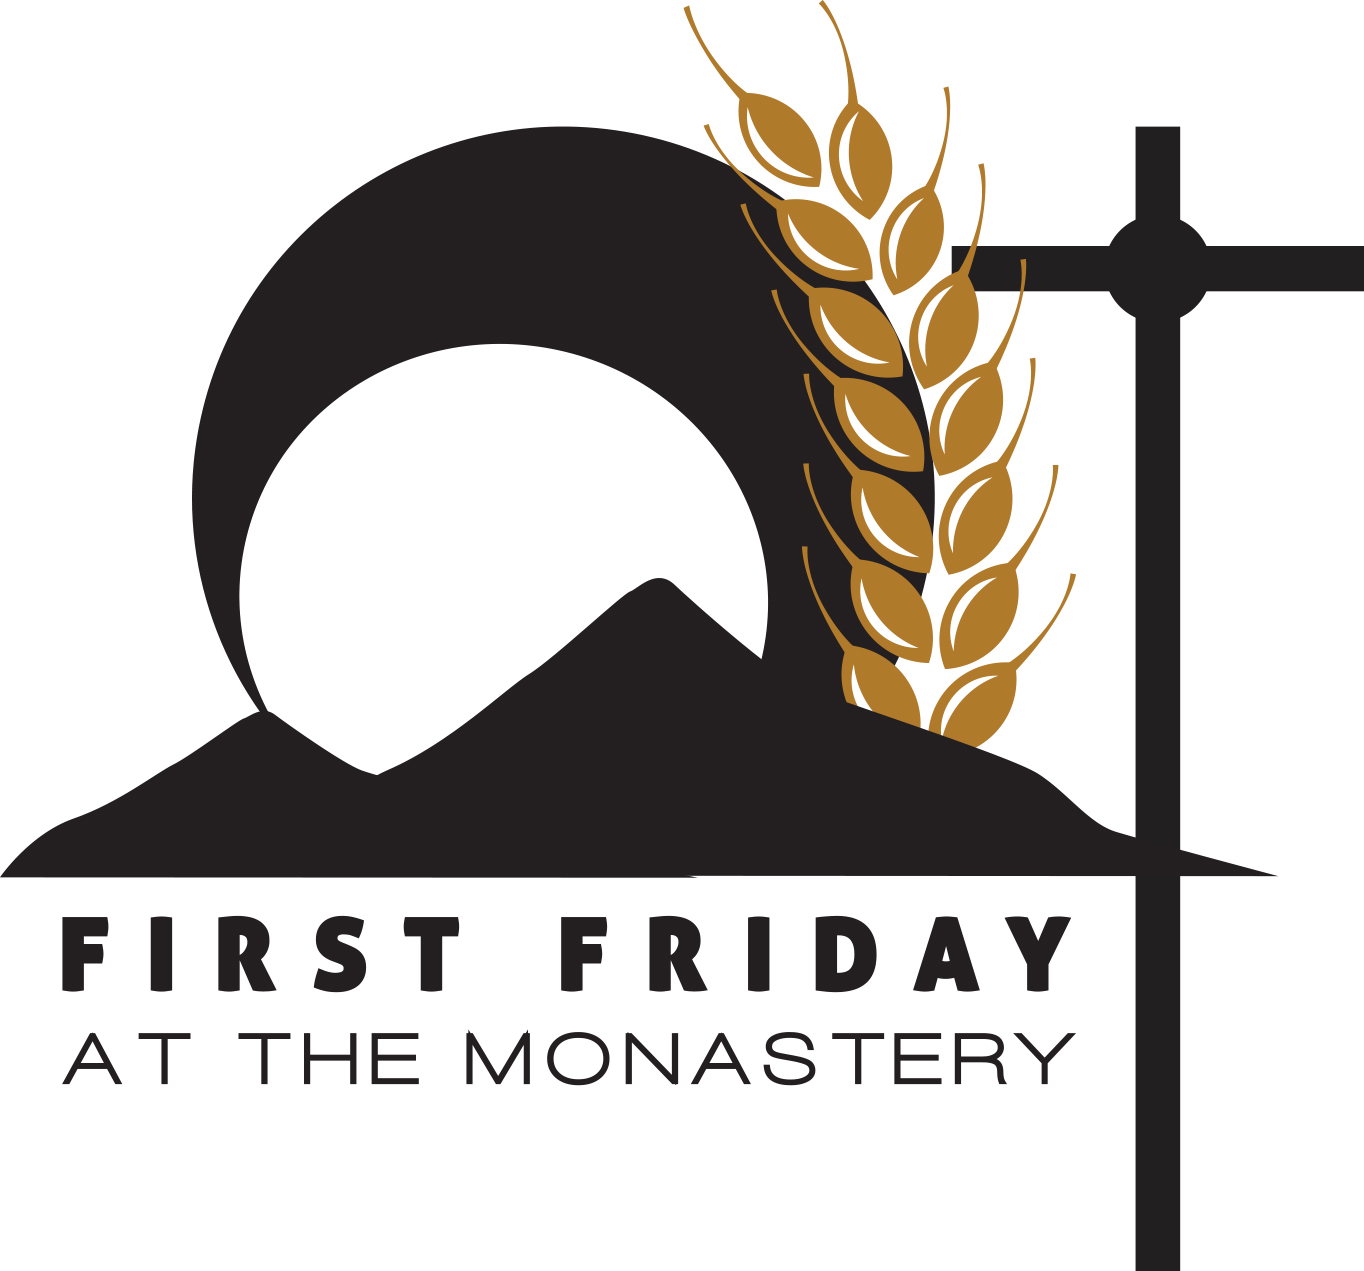 First Friday at the Monastery - OCT